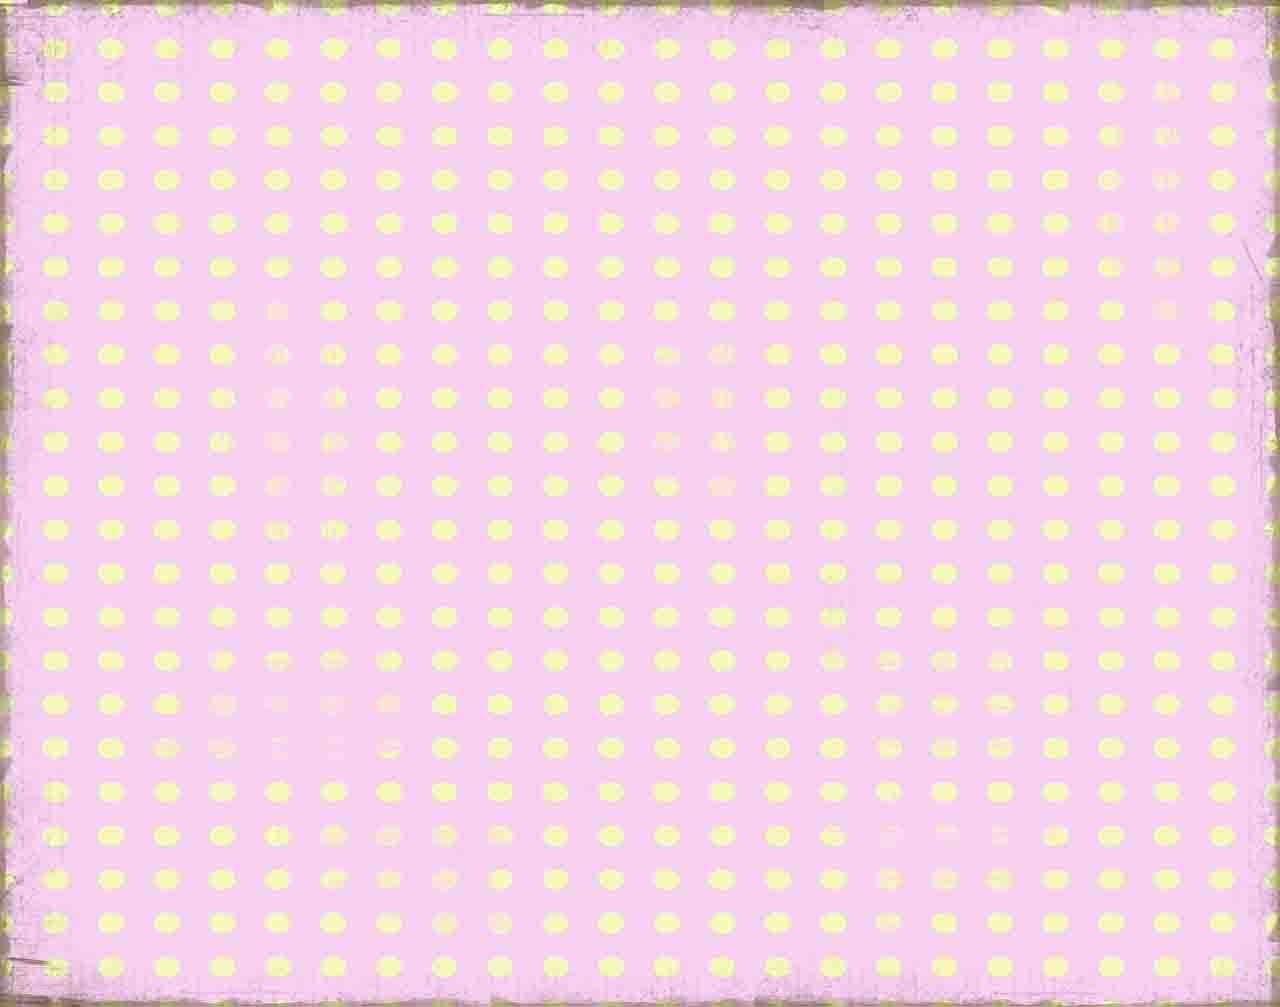 Easter Dots Pink Backgrounds